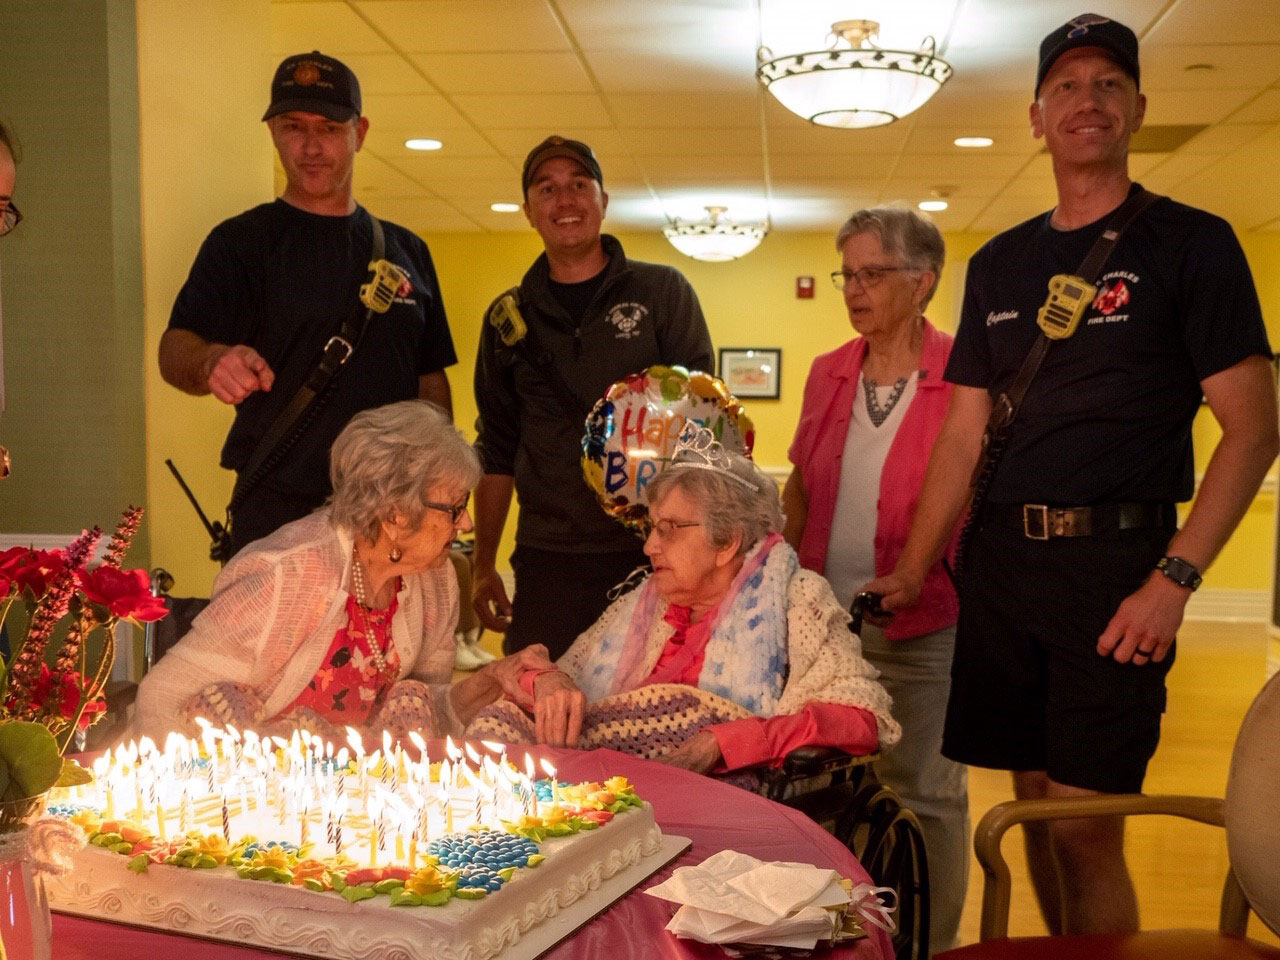 Verna Buchheit is one of the oldest alumna of Notre Dame High School in St. Louis. She turned 100 on June 3, 2019.